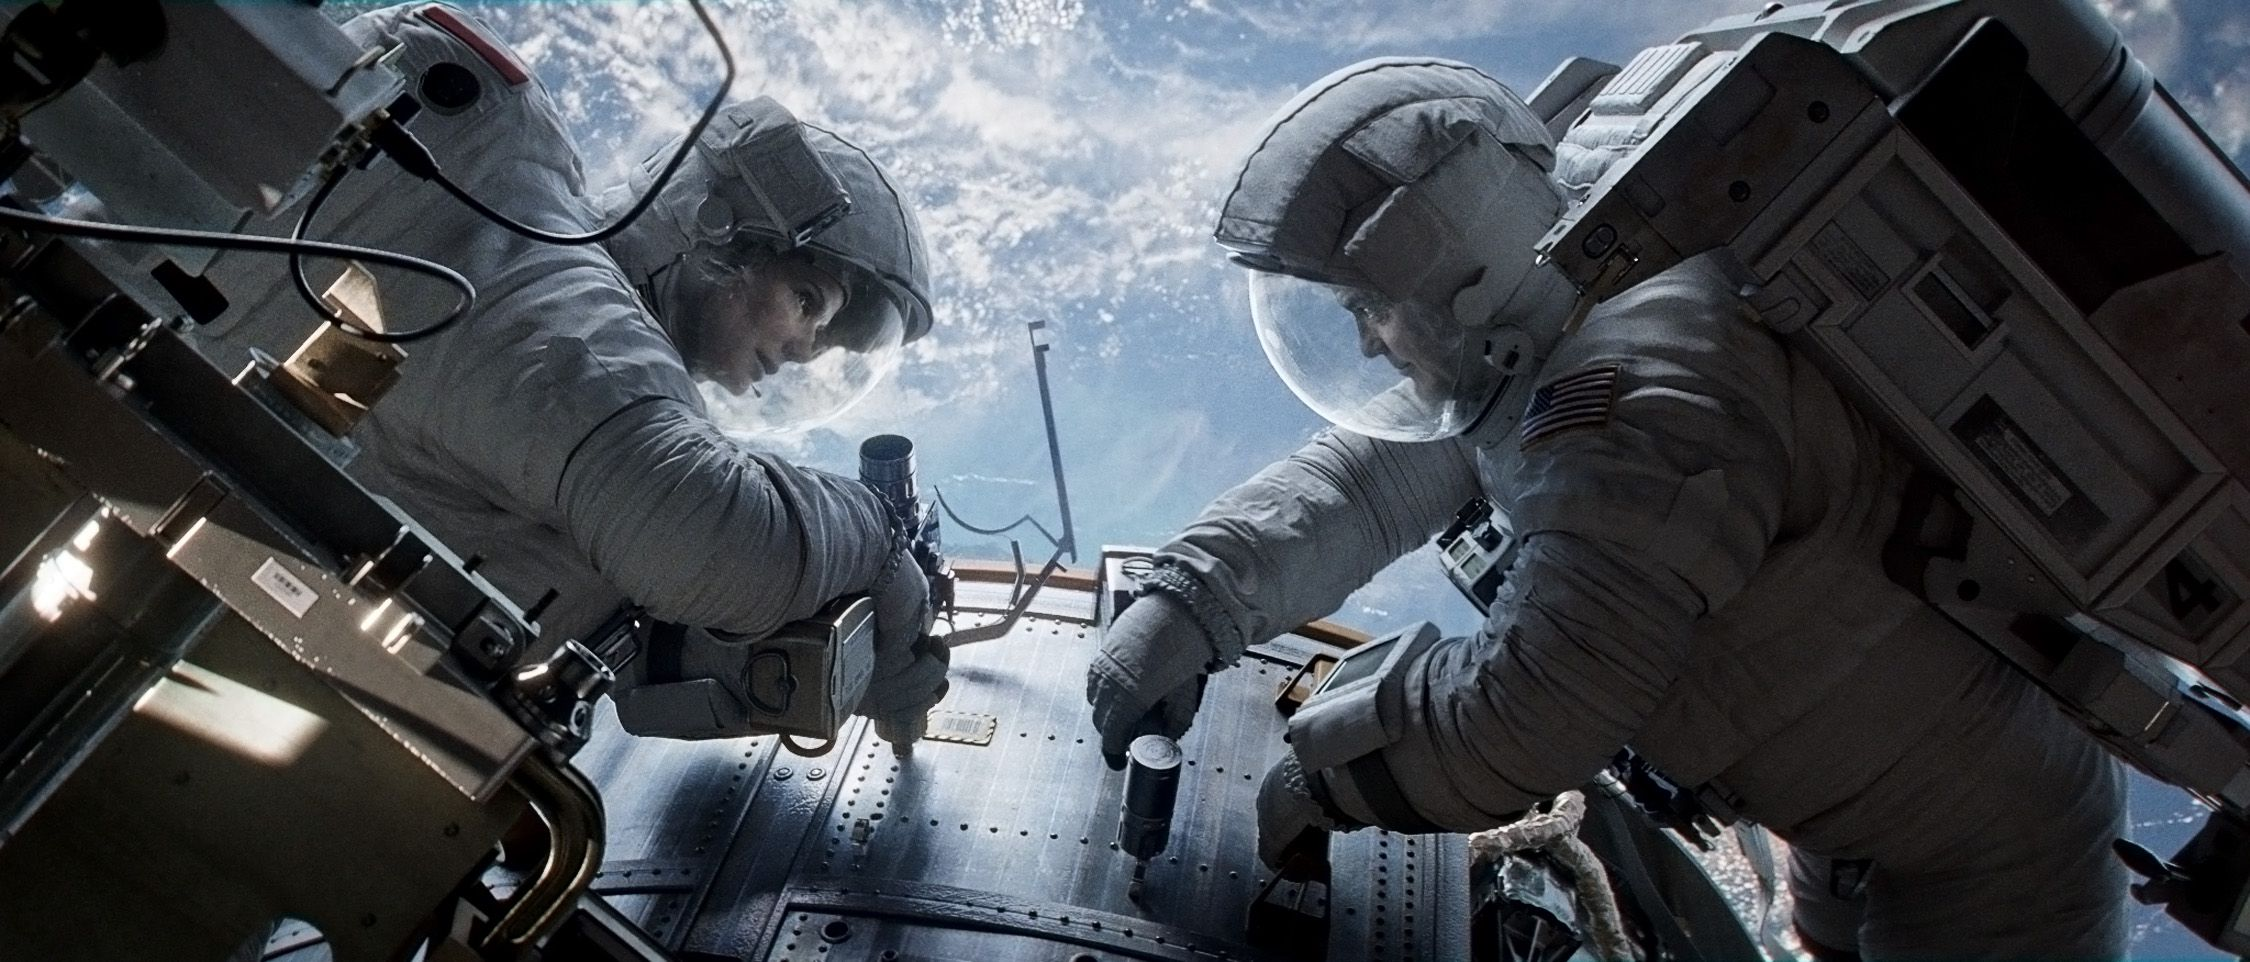 An image from Gravity